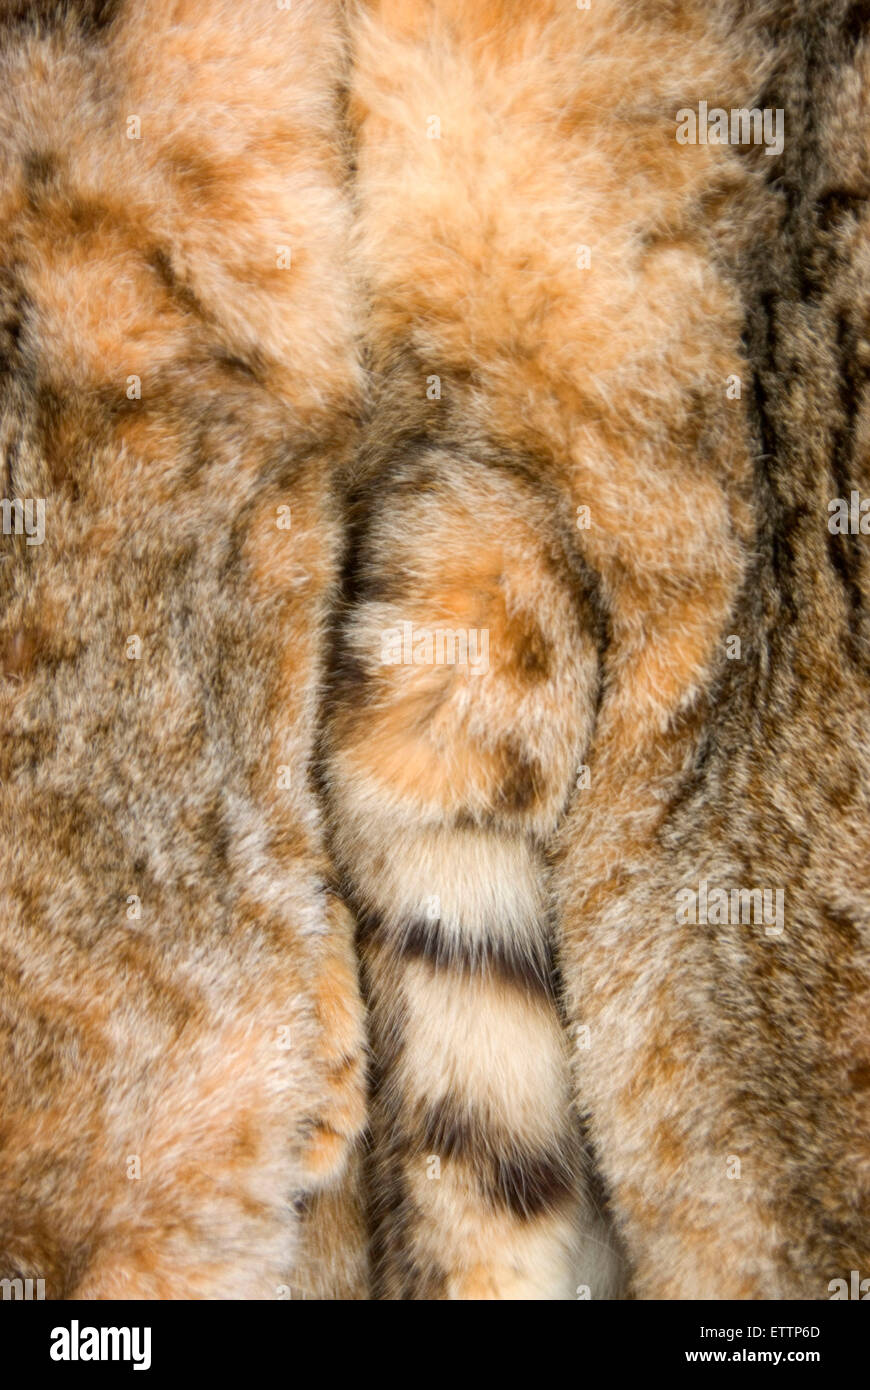 Bobcat fur, Grizzly Mountain Long Rifles Horse Ridge Rendezvous, Deschutes County, Oregg Stock Photo